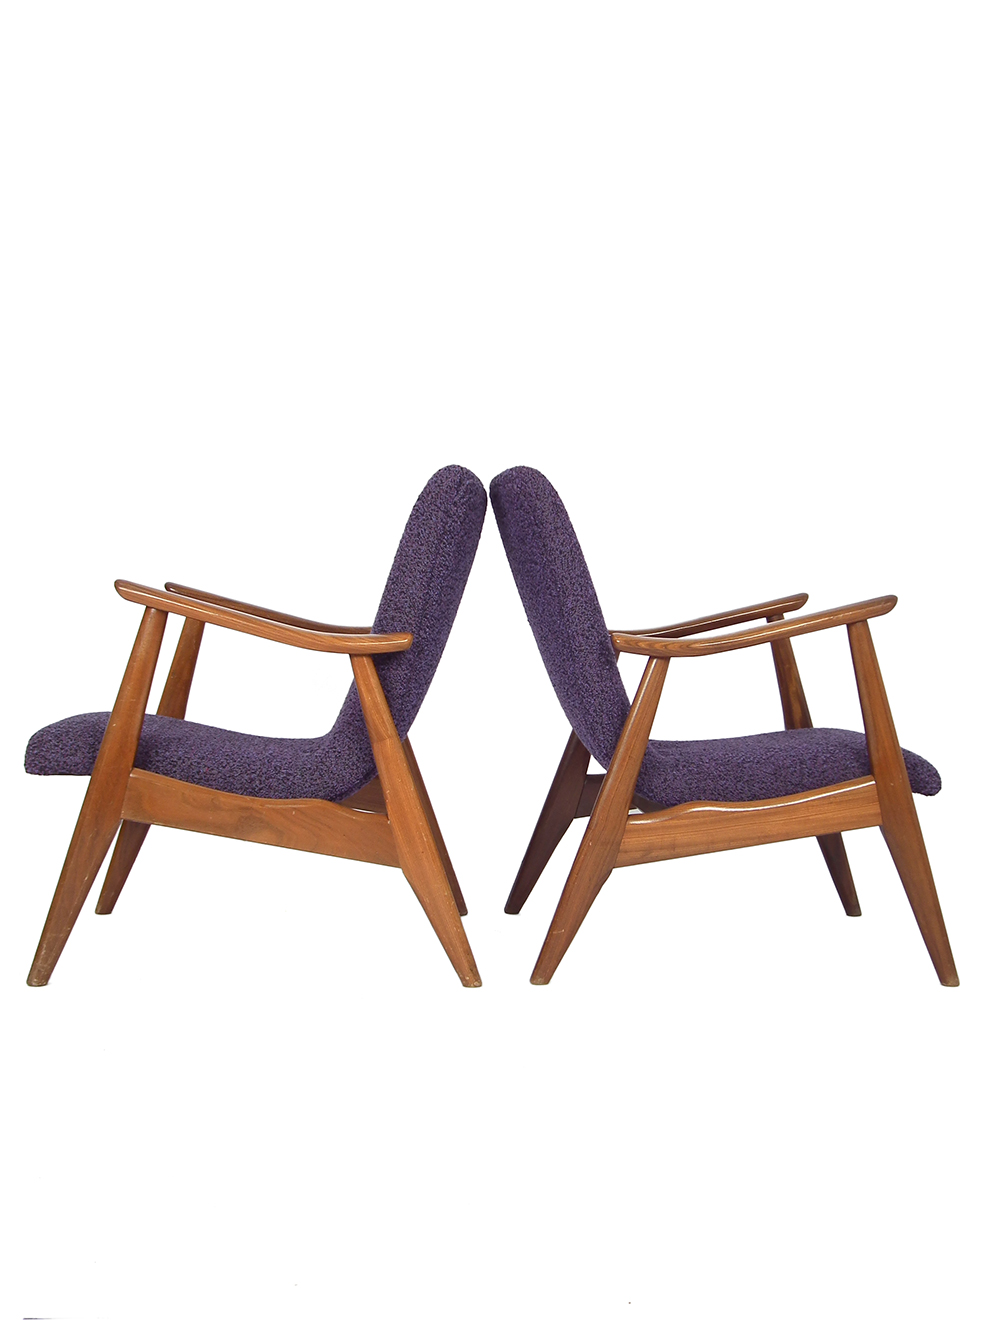 Webe chair - Louis van Teeffelen